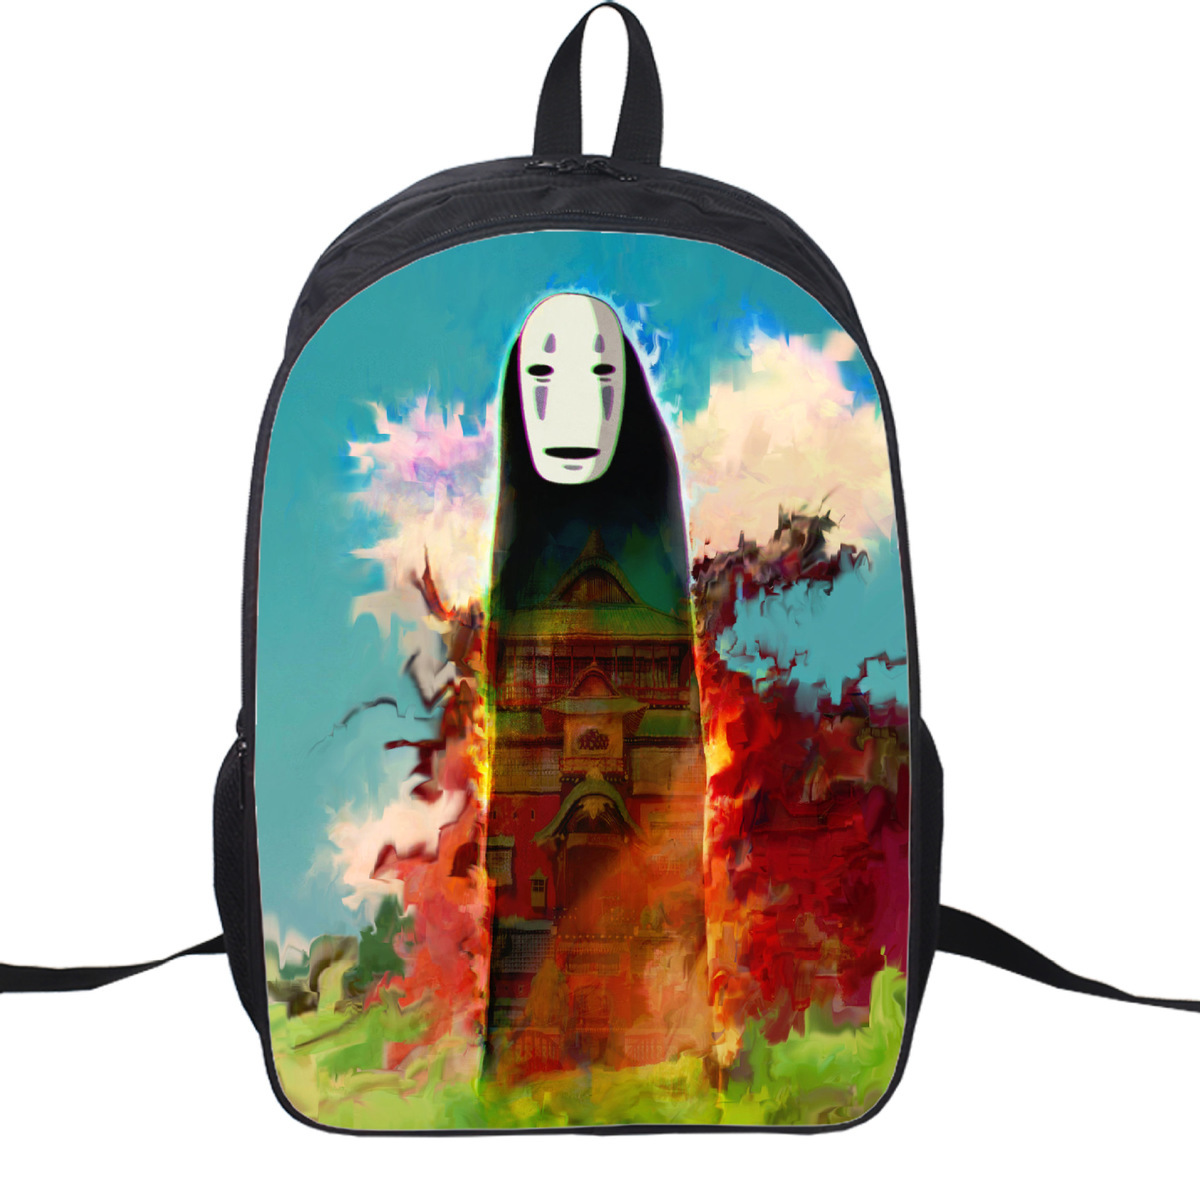 Japan Anime Miyazaki Totoro Spirited Away No Face Zipper Cute Canvas Cartoon Adult Double Belt Backpack School Bag 8 style ...